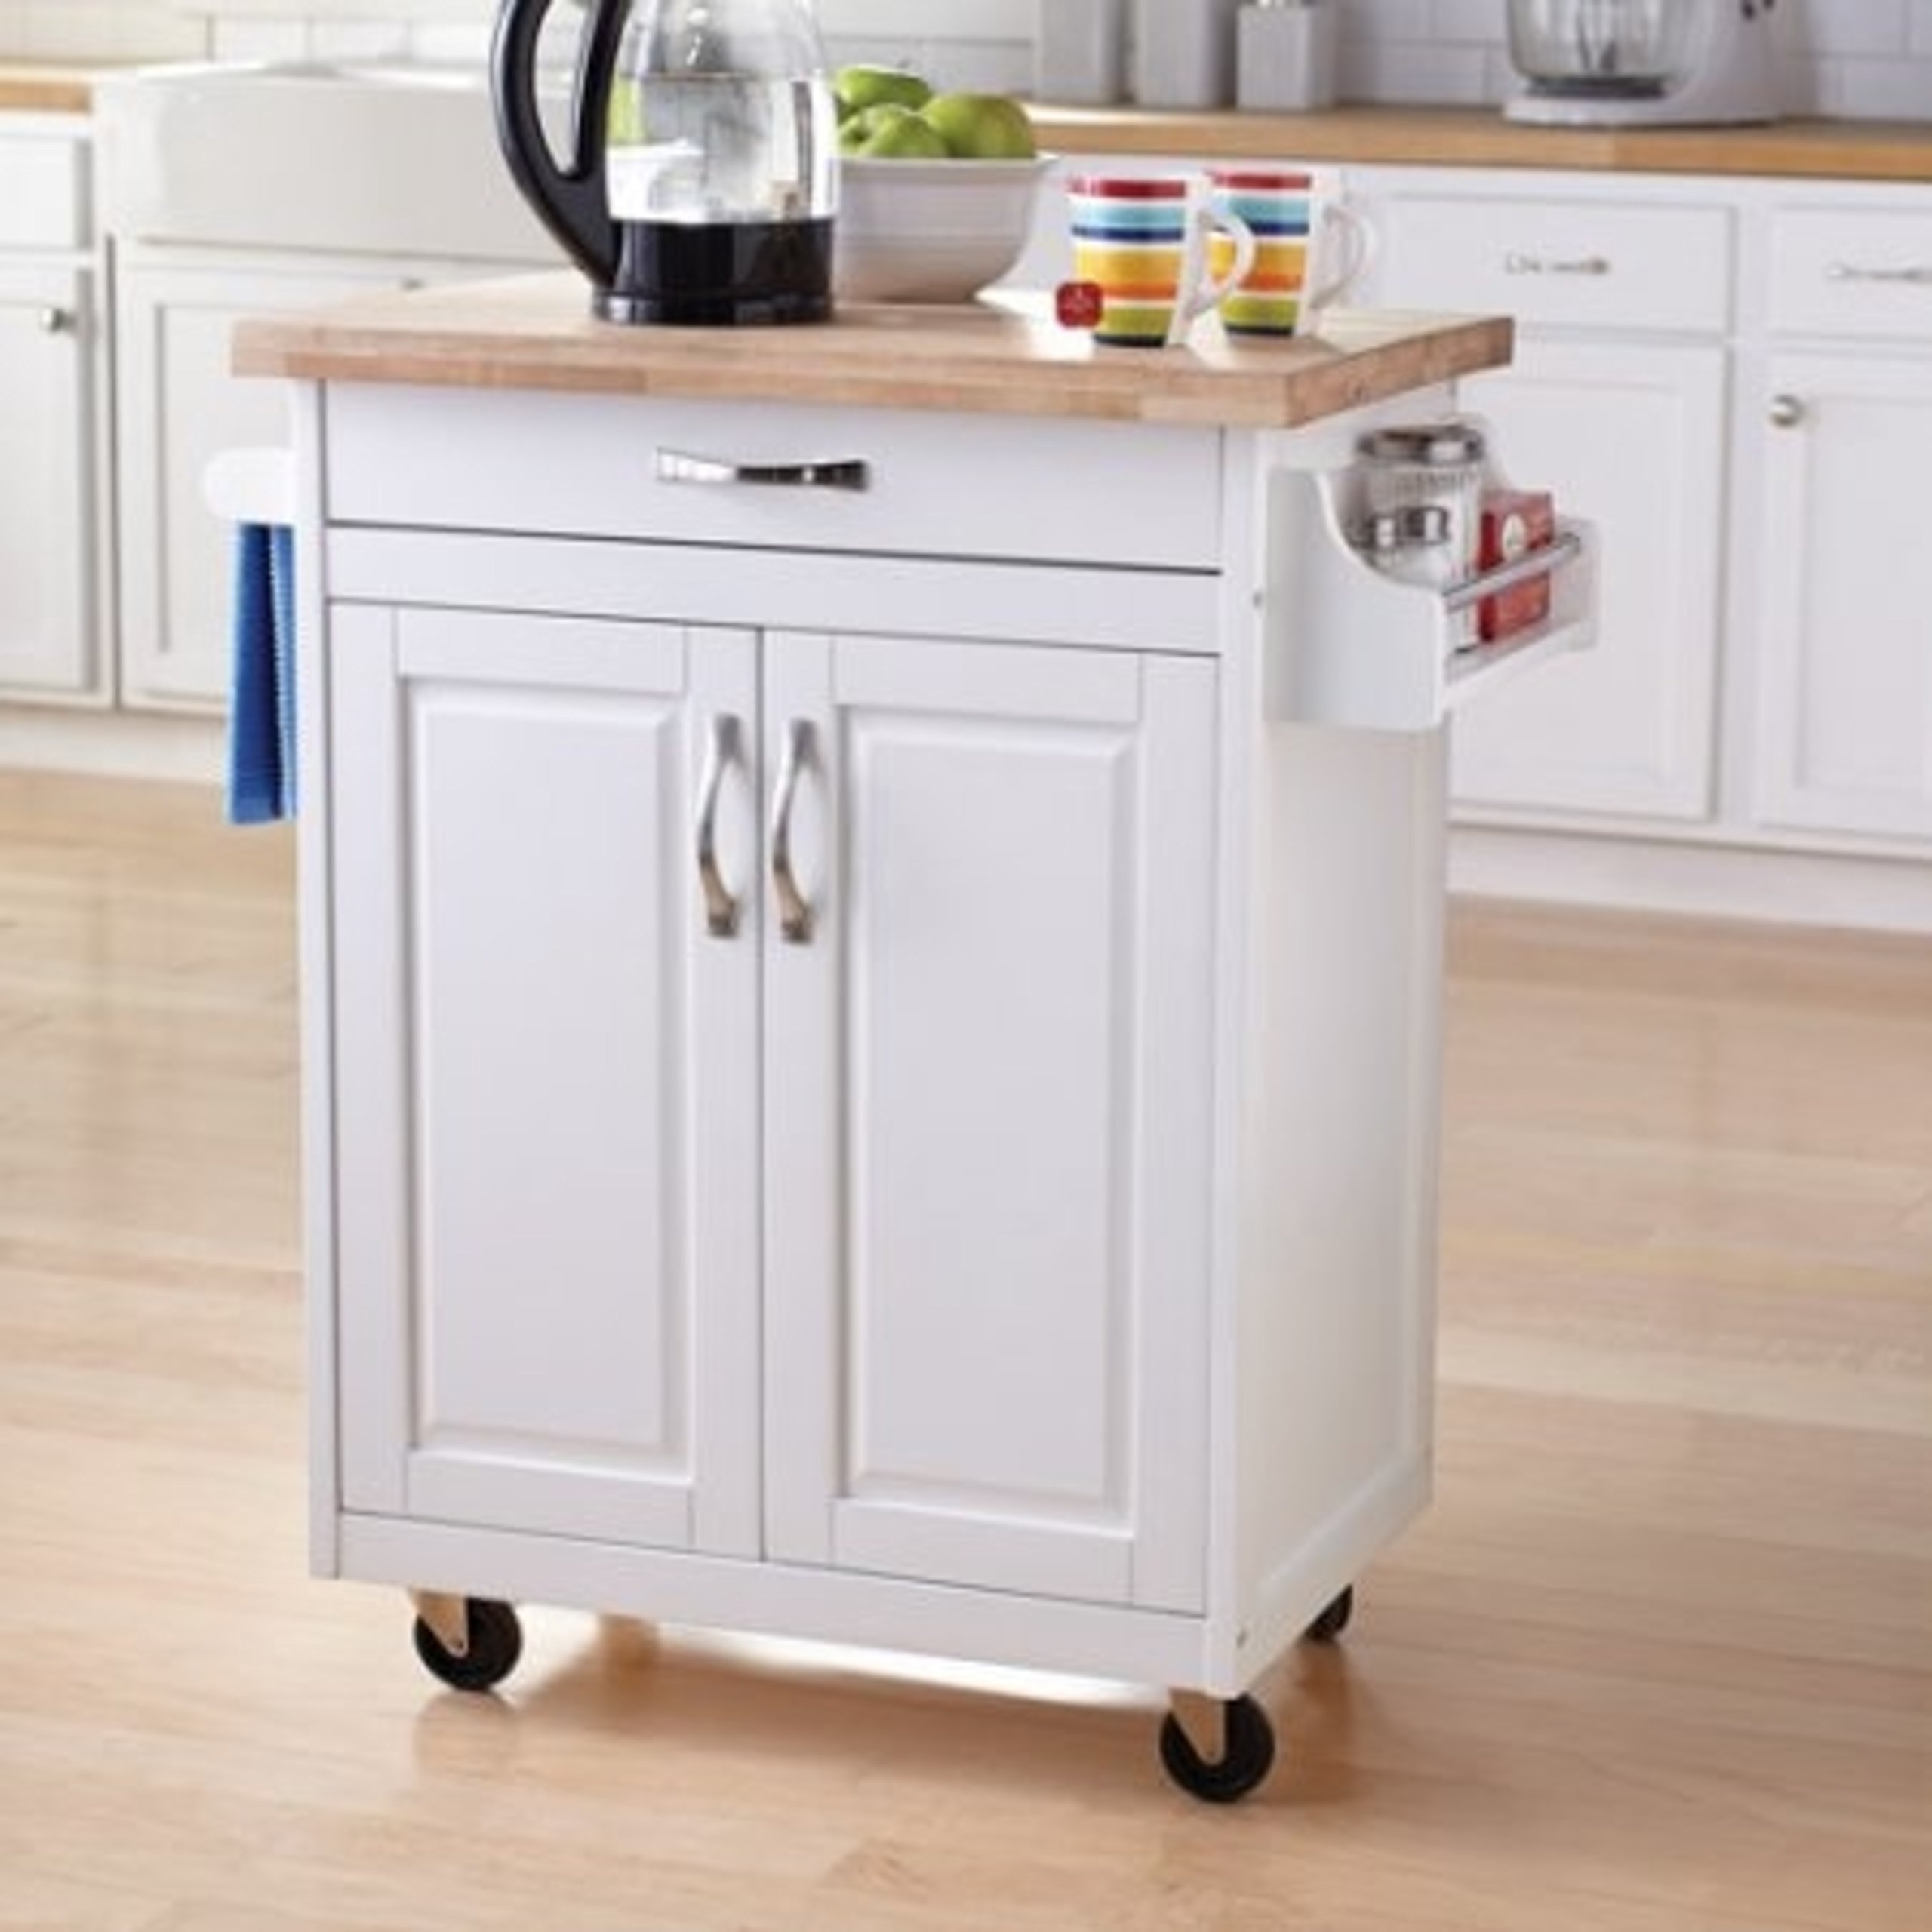 Solid Wood Top Traditional Design White Kitchen Island Cart